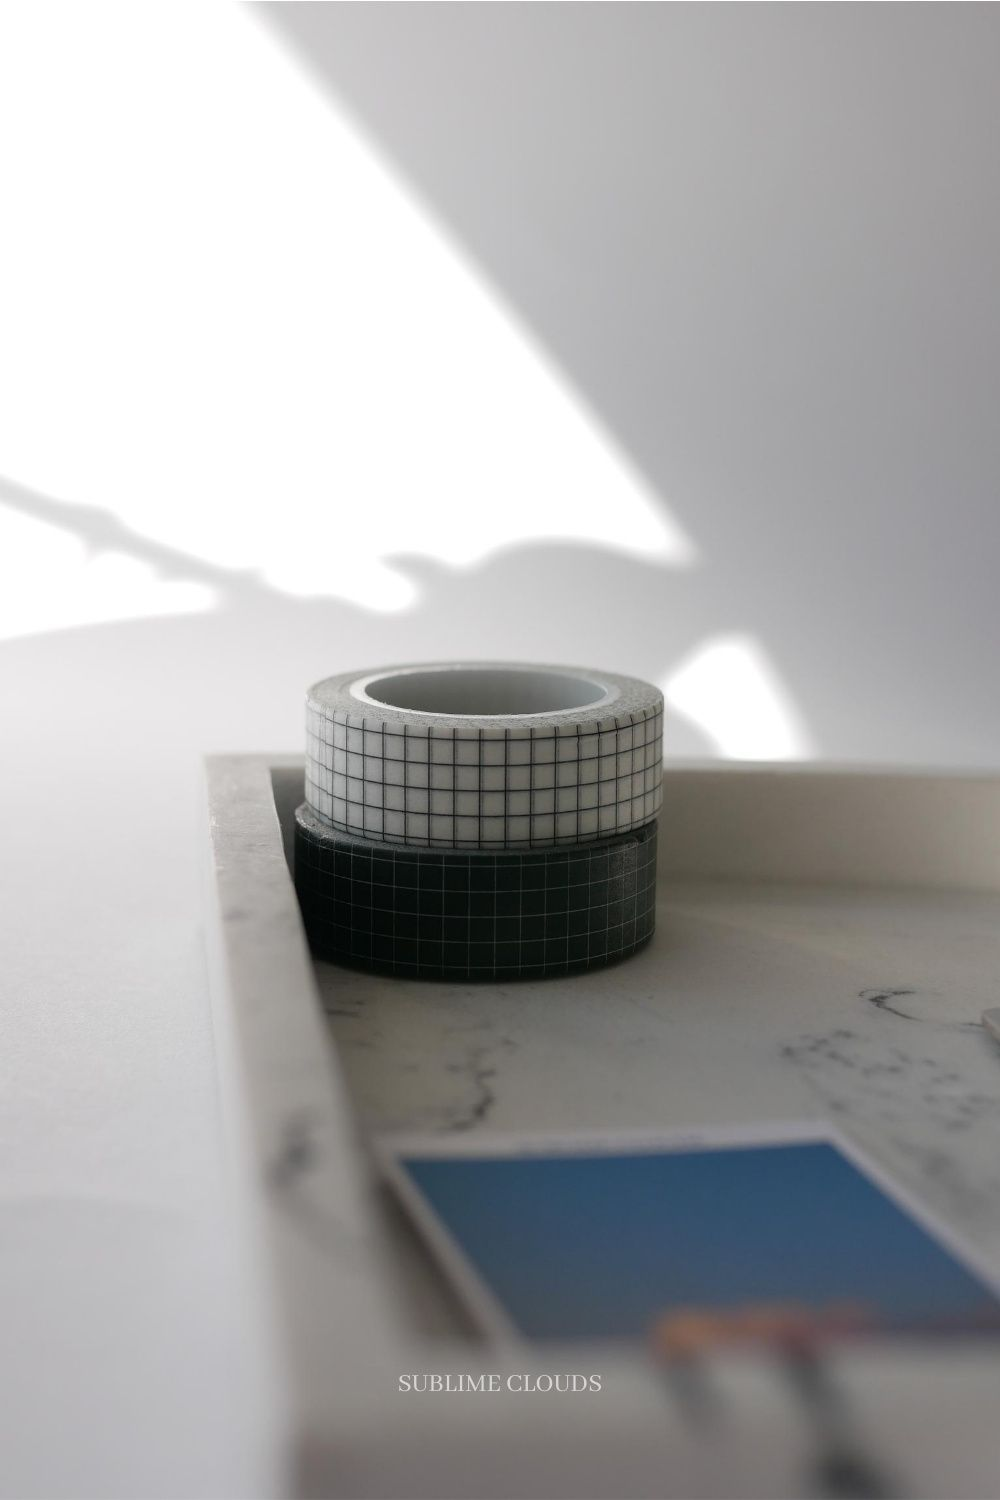 Grid Washi Tape Grid Decorative Tape Bullet Journal Etsy In 2020 Washi Tape Japanese Stationery Bullet Journal Accessories